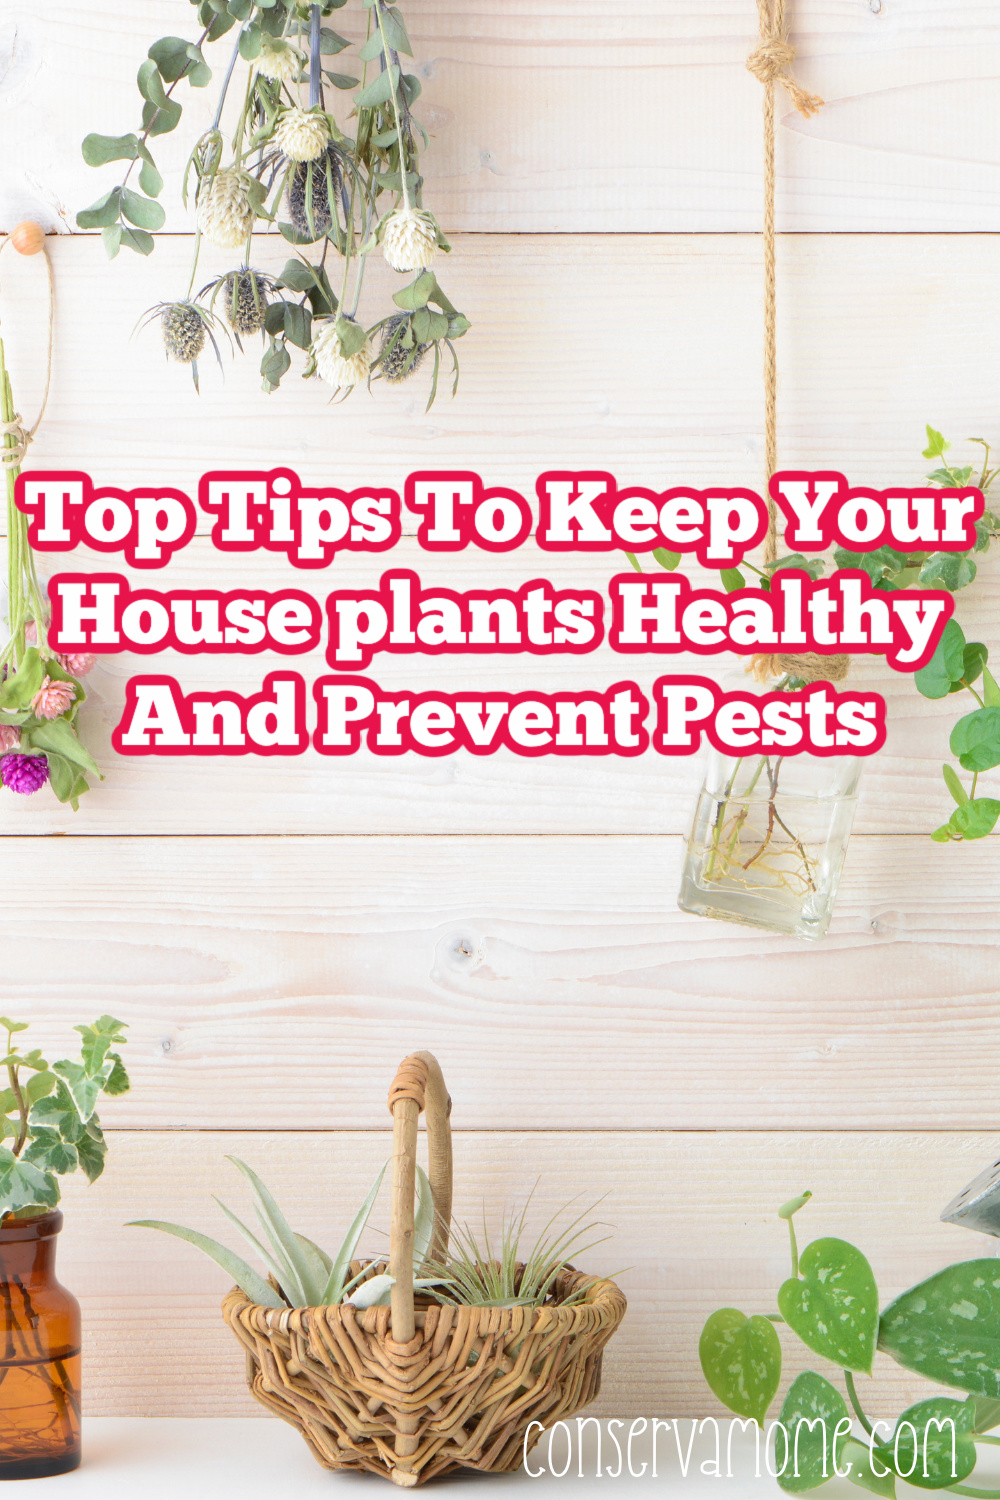 Top tips to keep your houseplants healthy and prevent pests